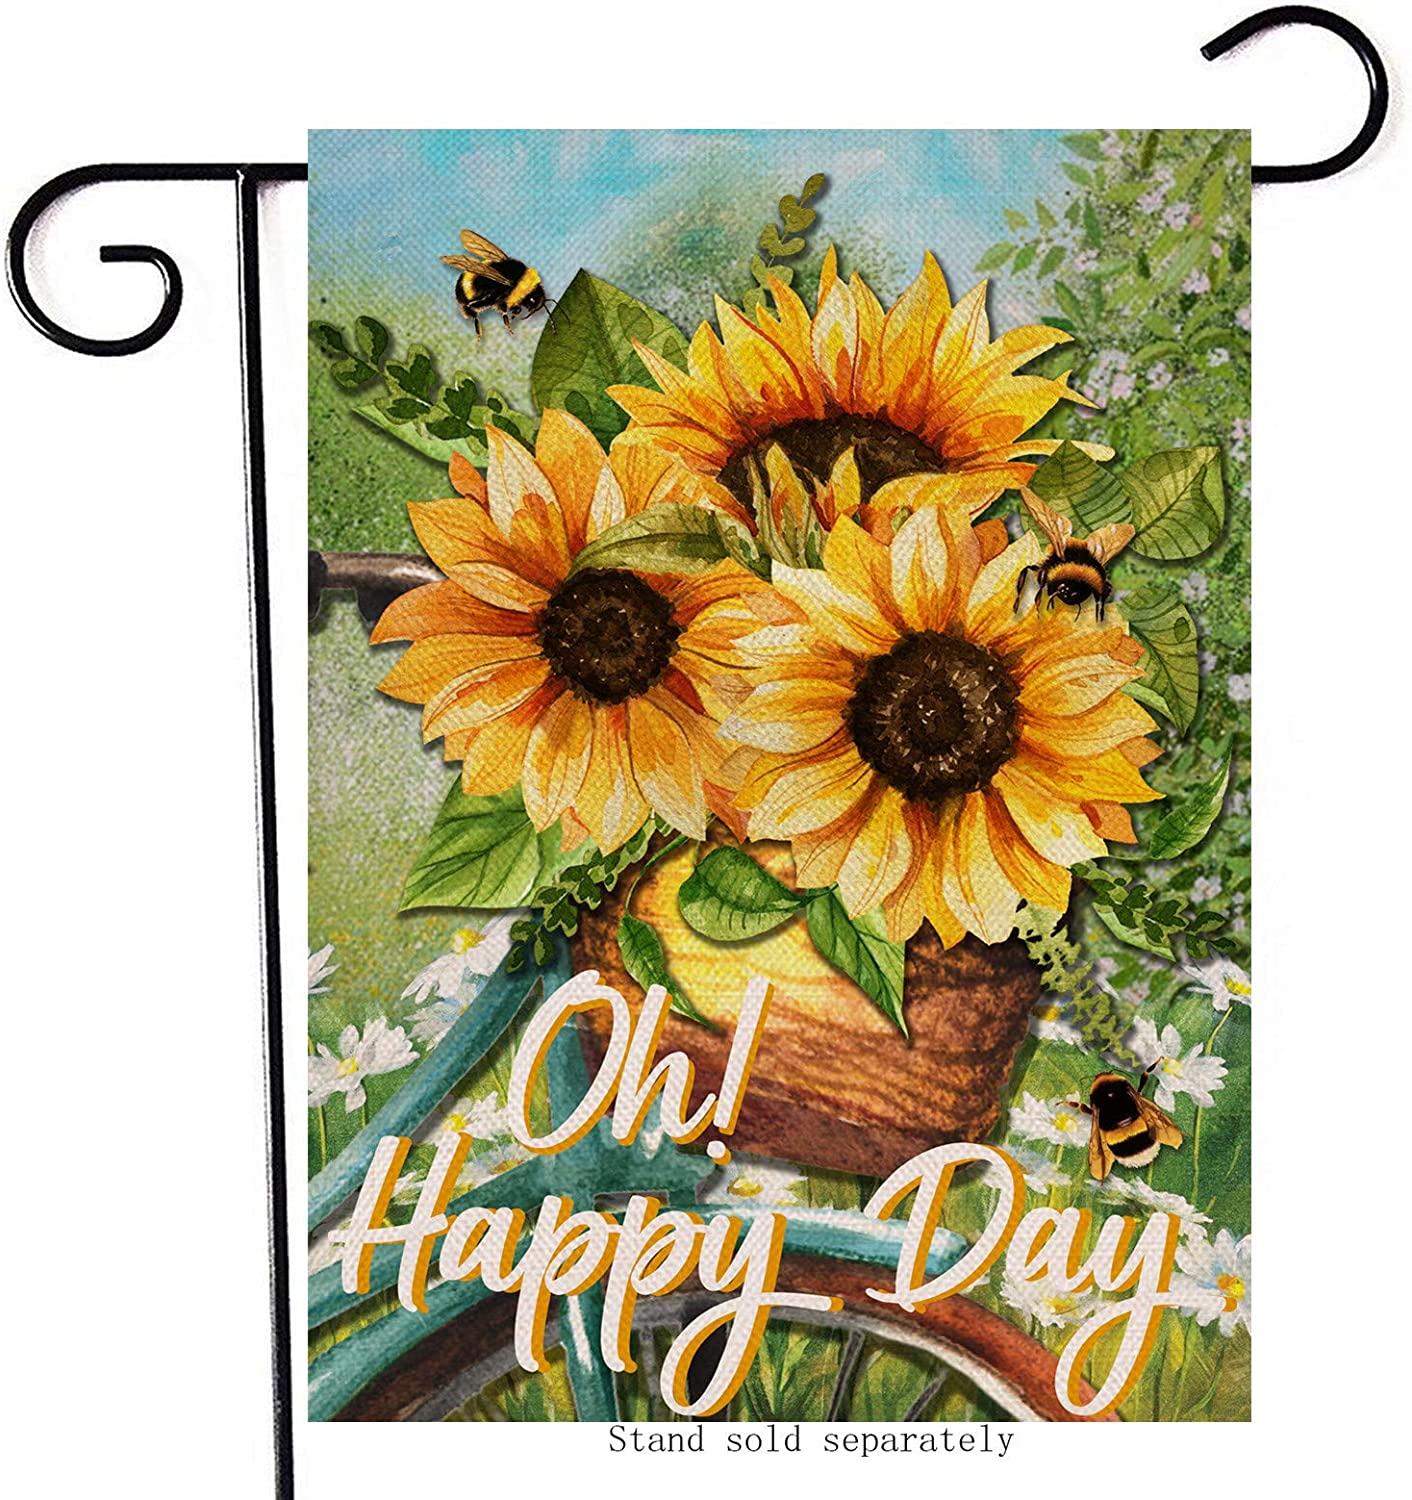 Hzppyz Sunflower Spring Garden Flag, Oh Happy Day Home Decorative House Yard Outdoor Bee Flower Bike Decoration Sign, Summer Outside Bicycle Lawn Decor Farmhouse Small Burlap Flag Double Sided 12 x 18